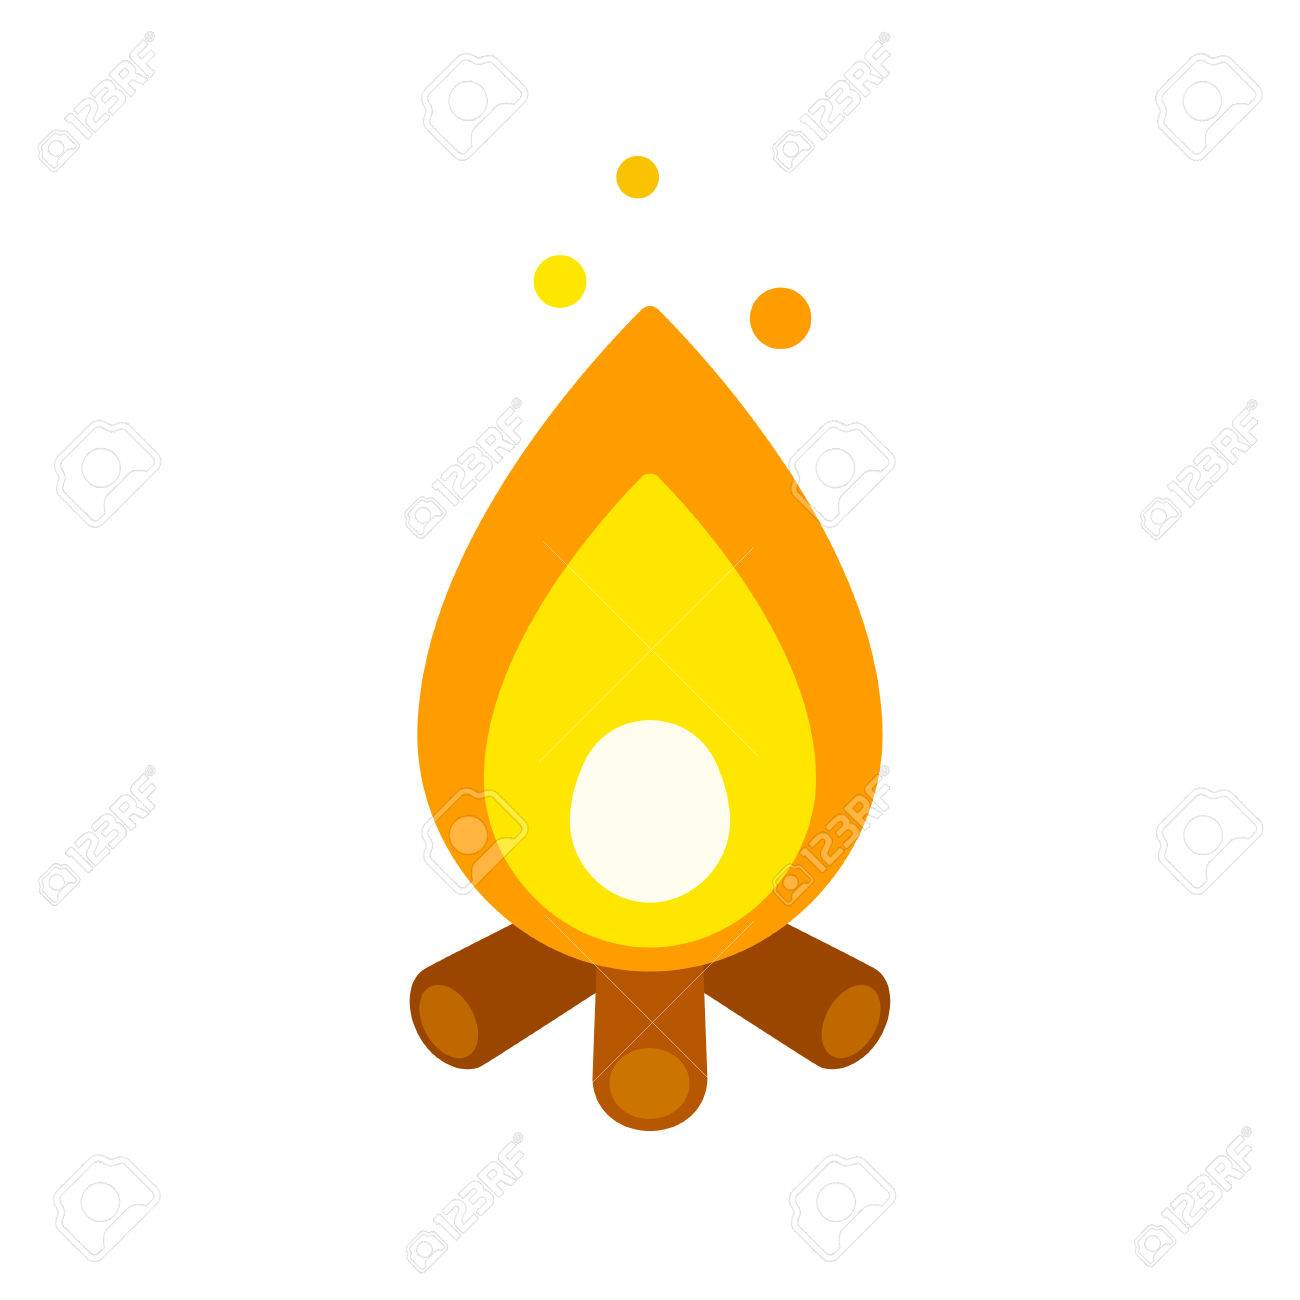 Campfire clipart easy. Icon group illustration burning